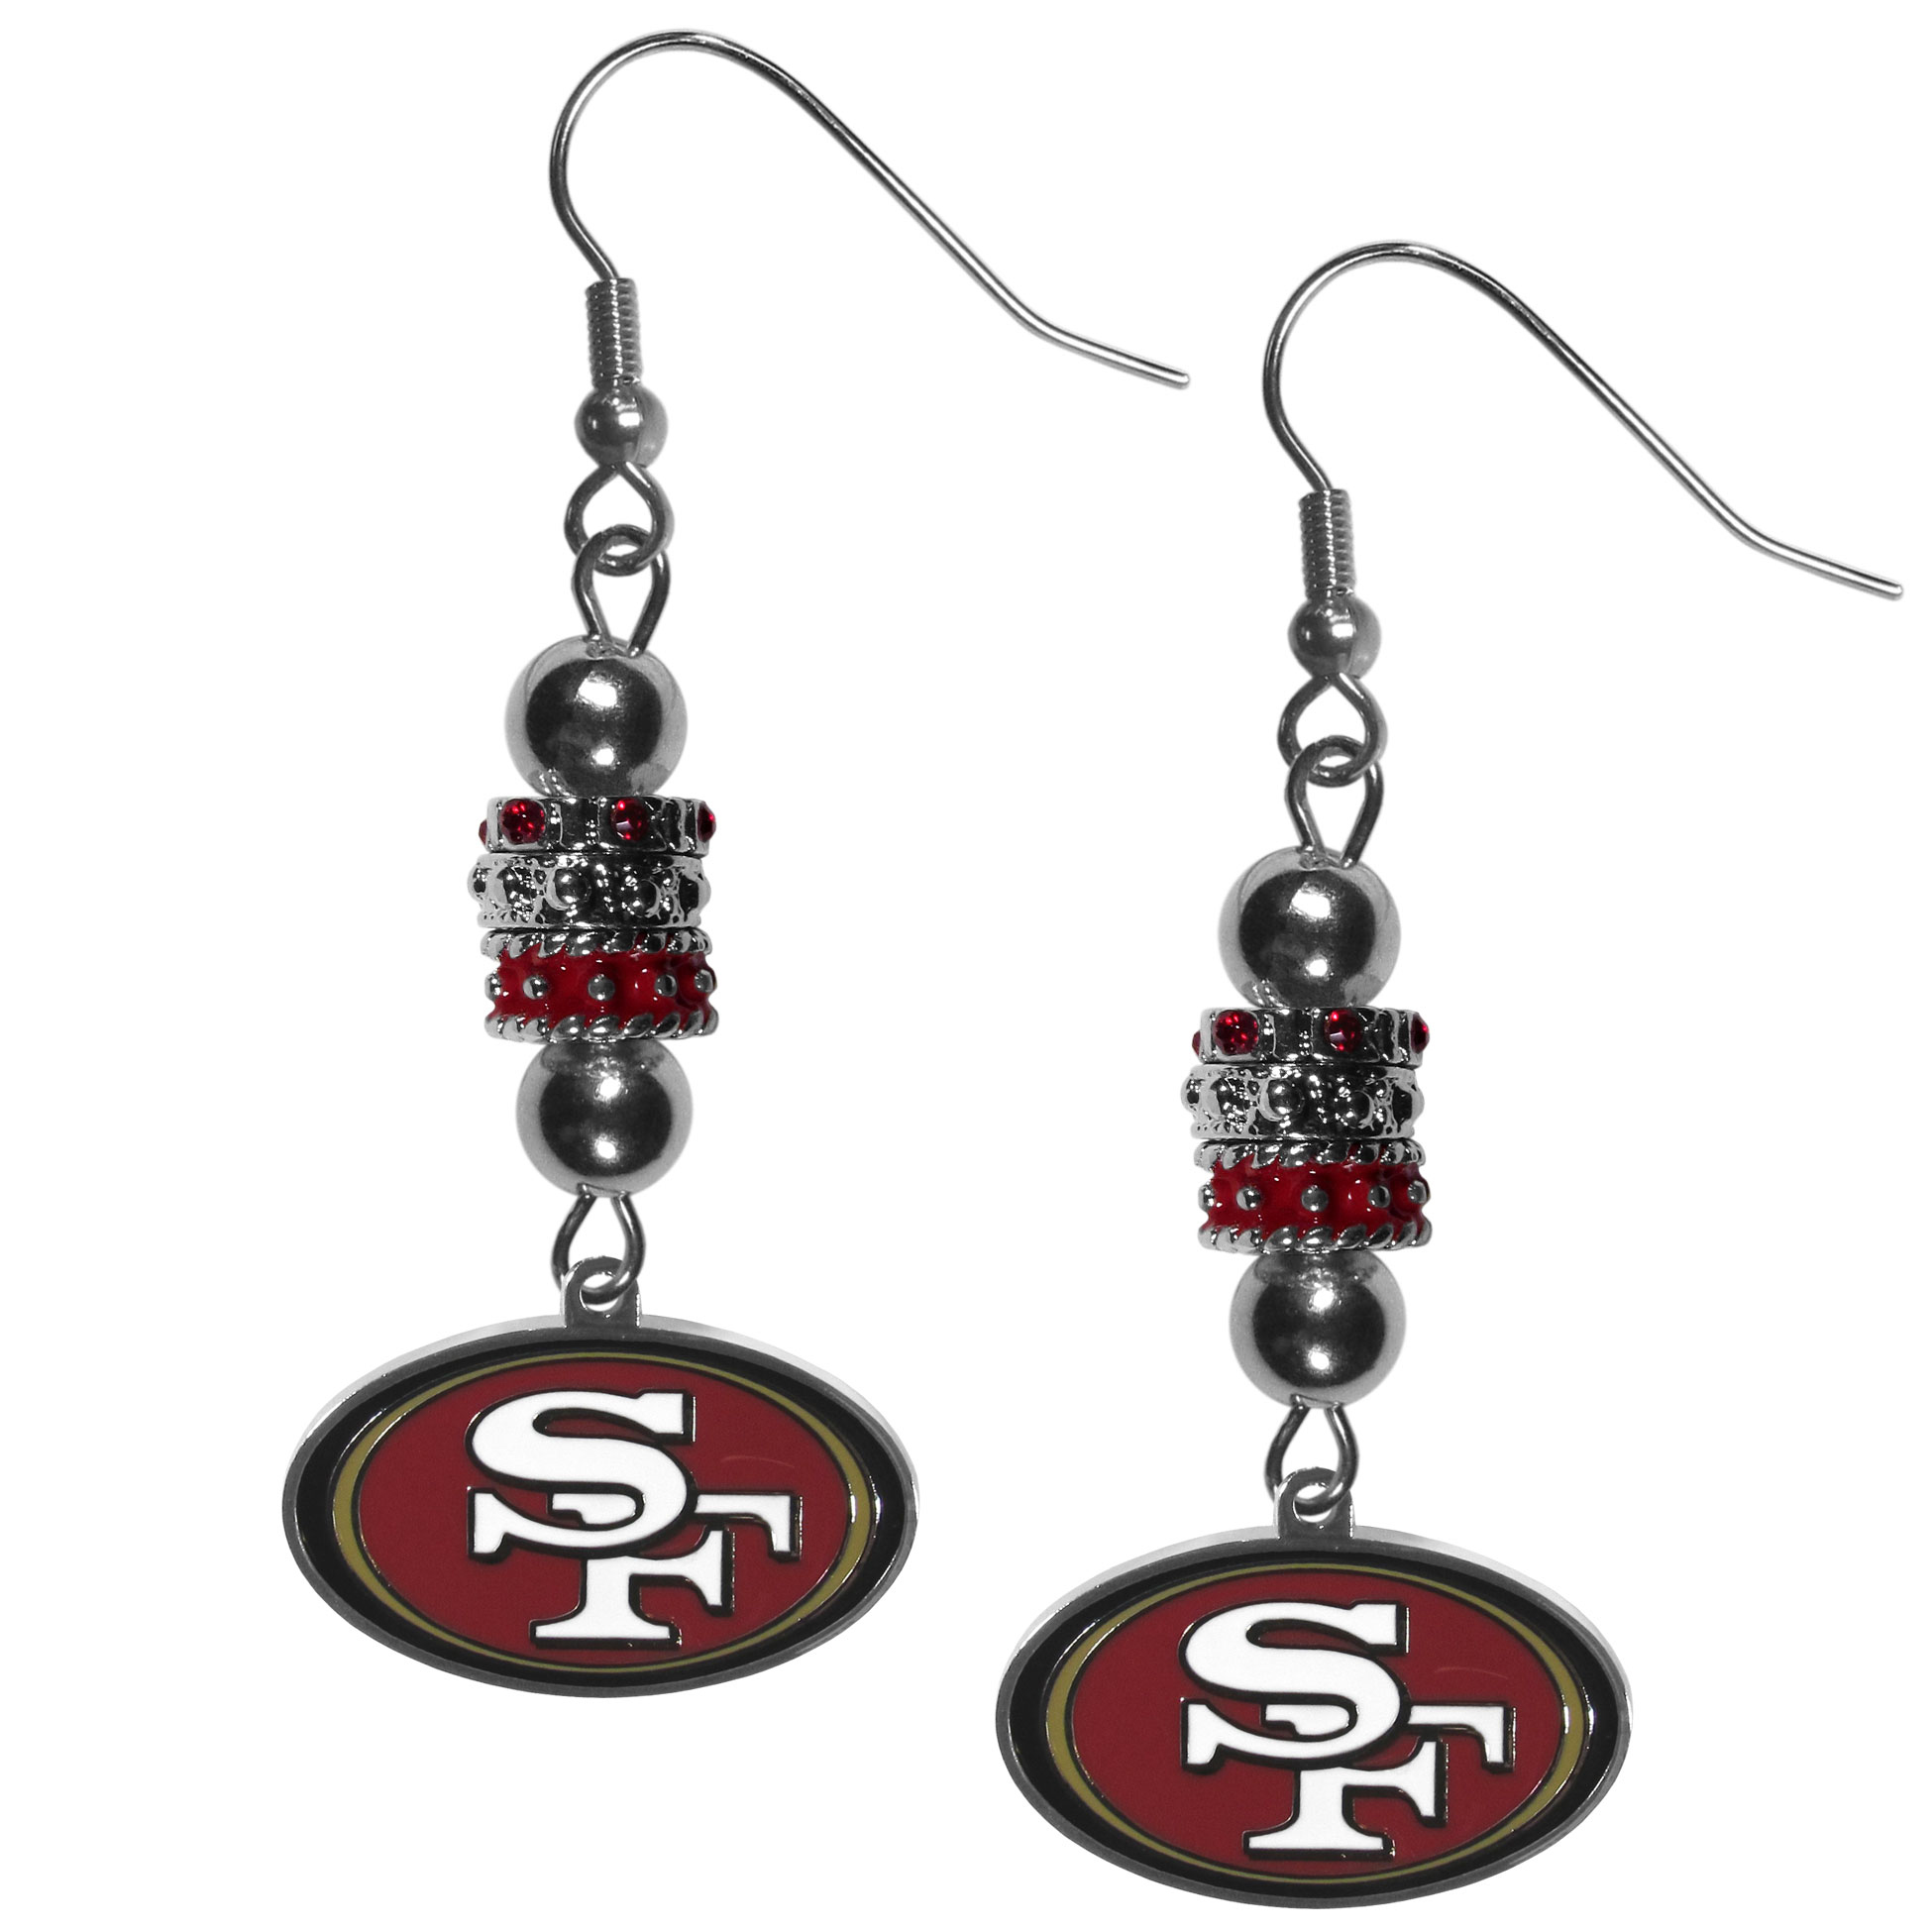 San Francisco 49ers Euro Bead Earrings - These beautiful euro style earrings feature 3 euro beads and a detailed San Francisco 49ers charm on hypoallergenic fishhook posts.